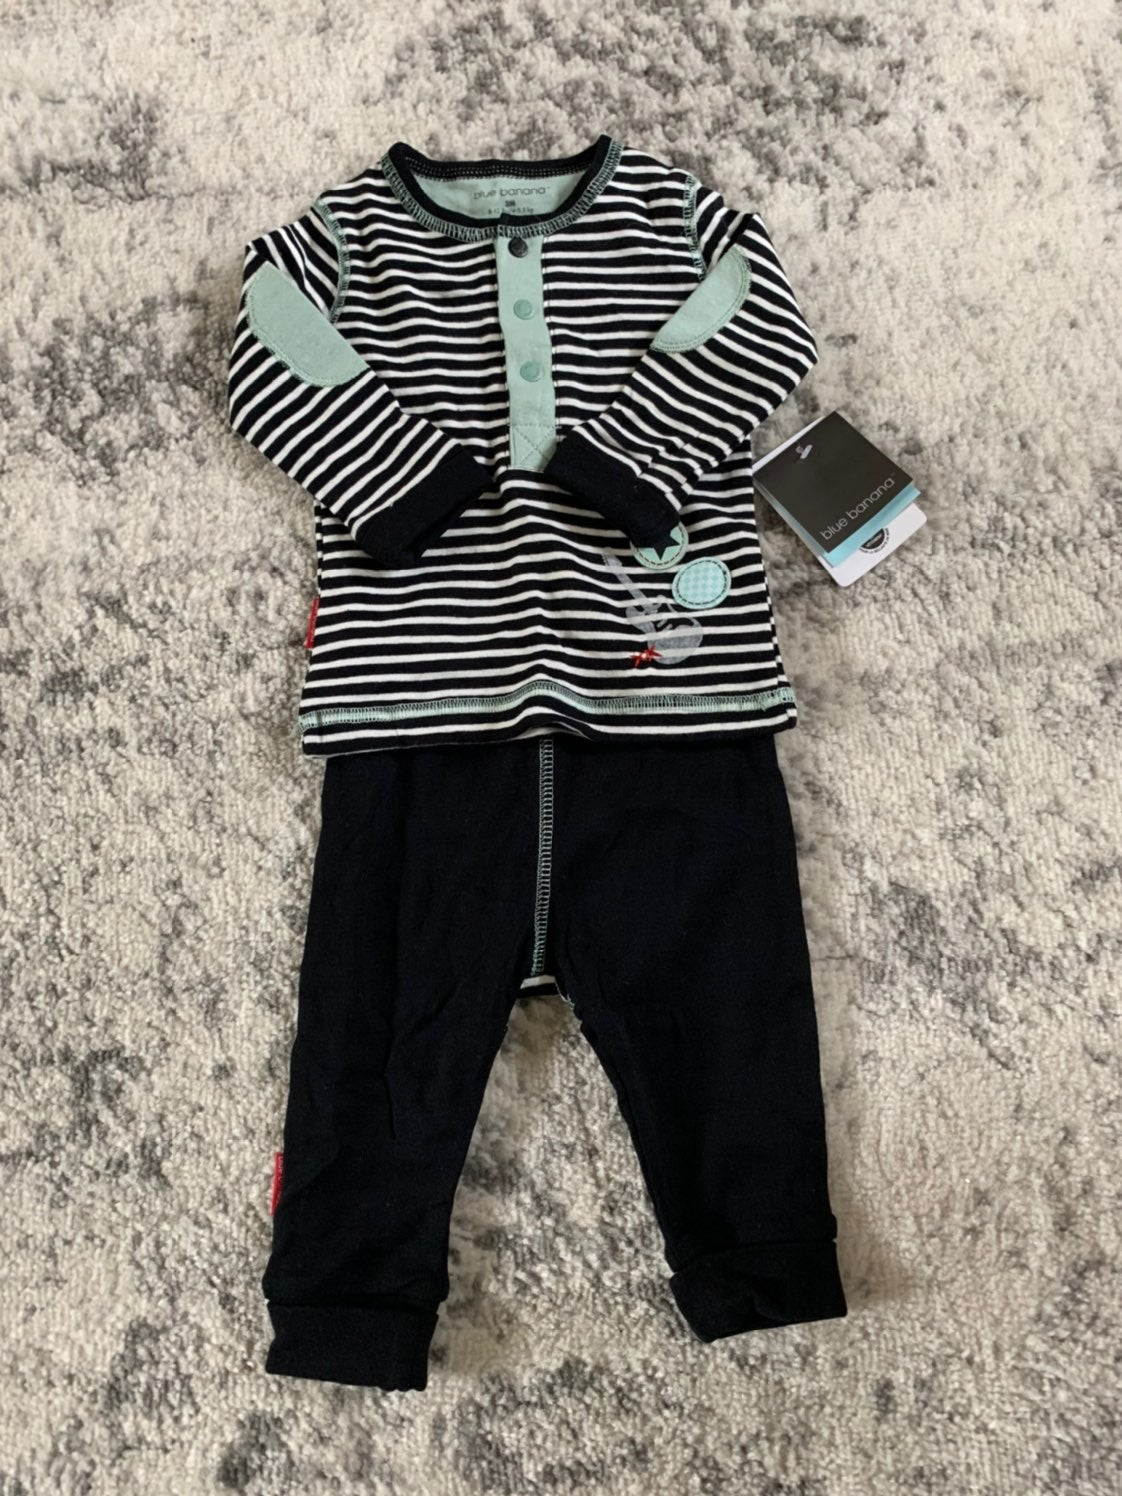 Baby boy music guitar outfit